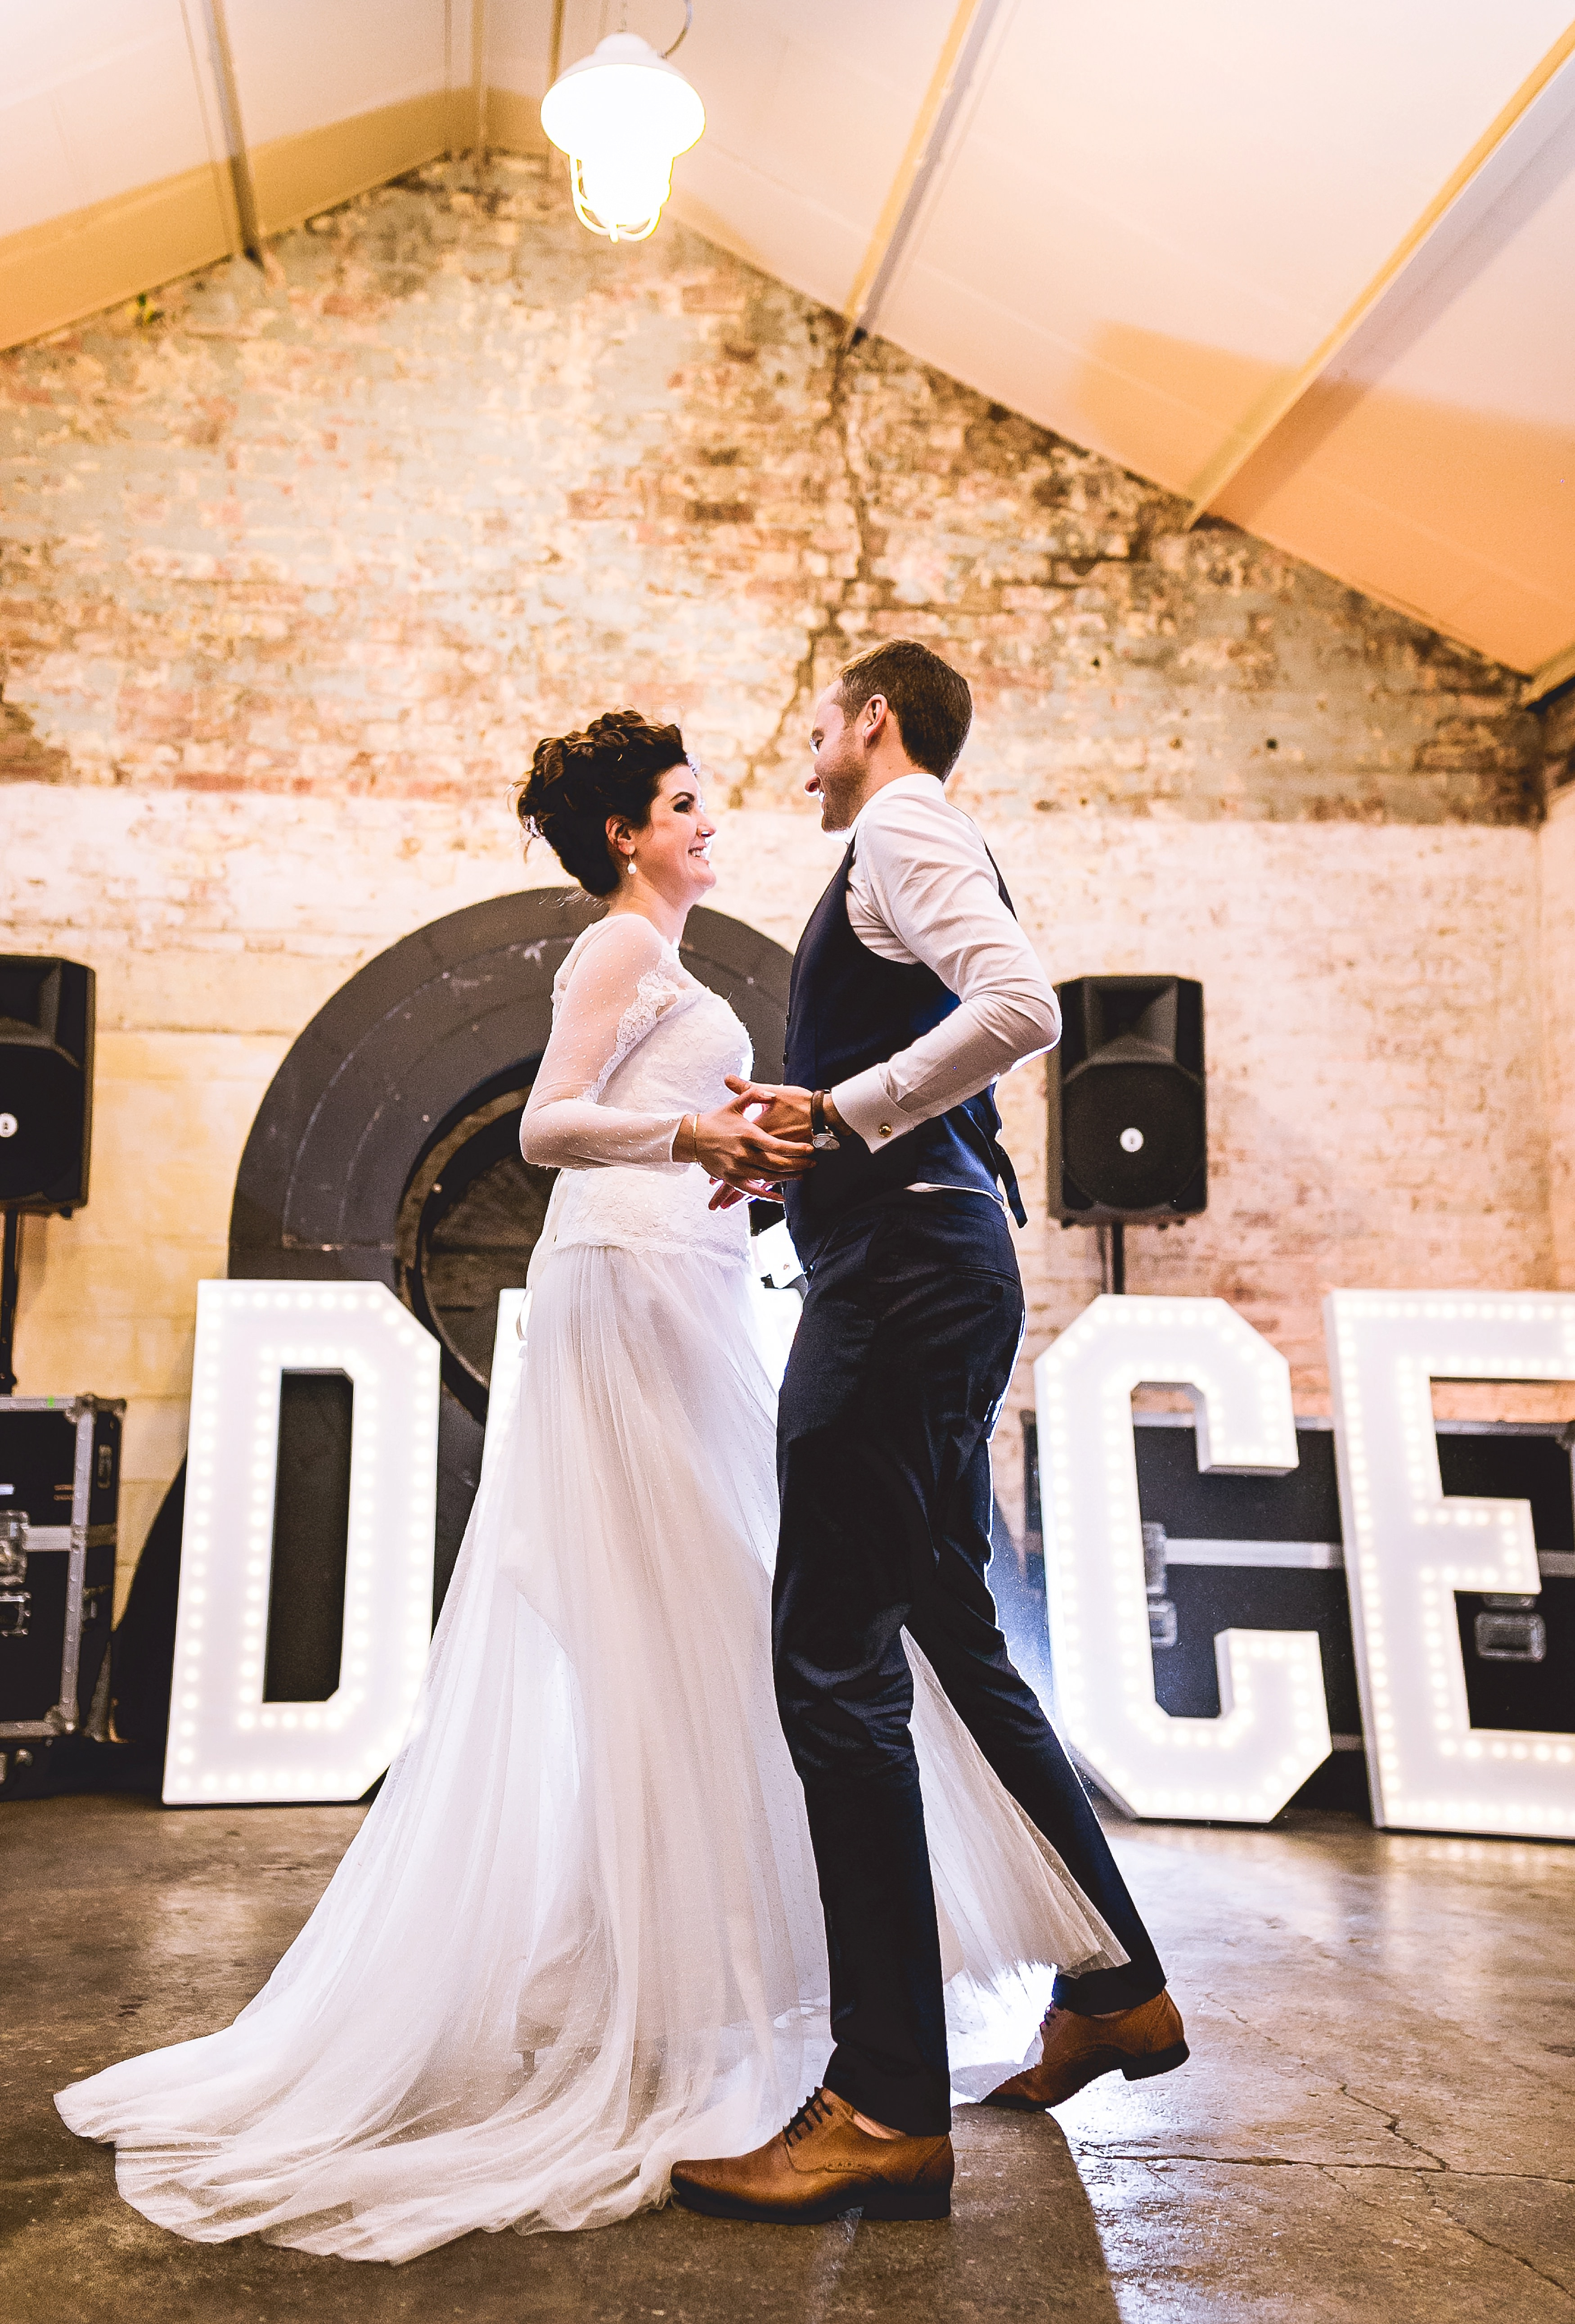 new oletters gatsby quirky wedding in london warehouse one firendly place greenwich